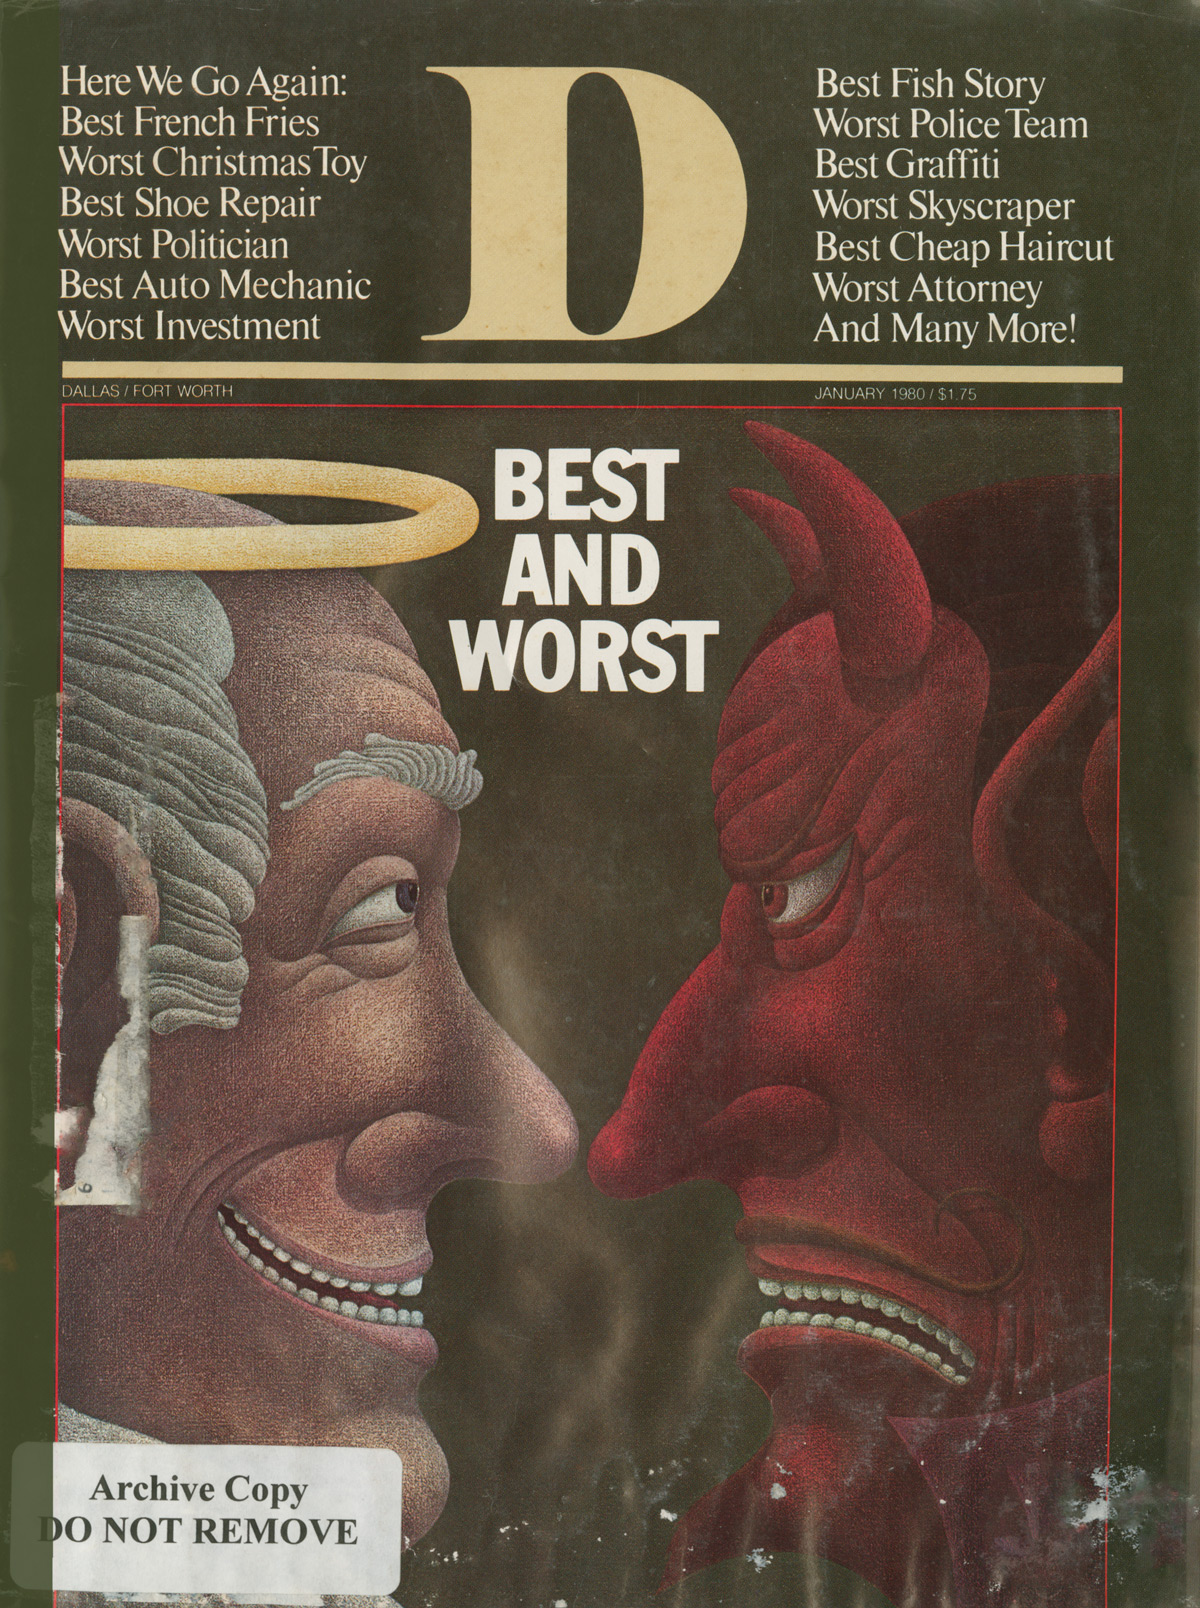 January 1980 cover